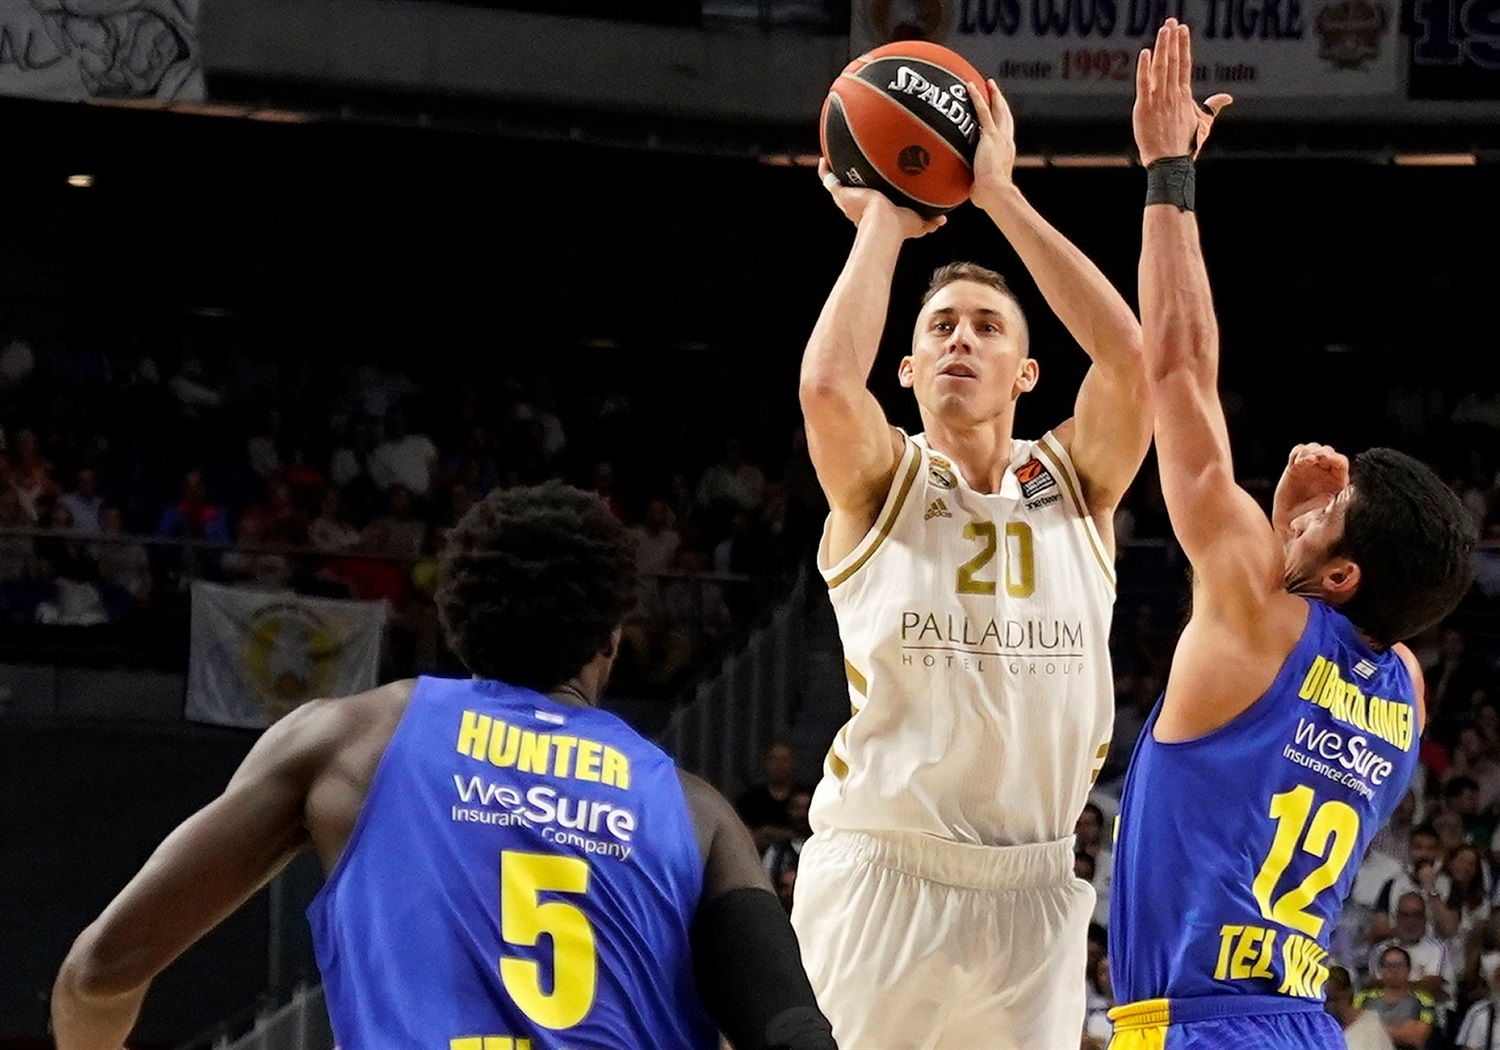 El Real Madrid intenta la renovación de Jaycee Carroll - Piratas ...